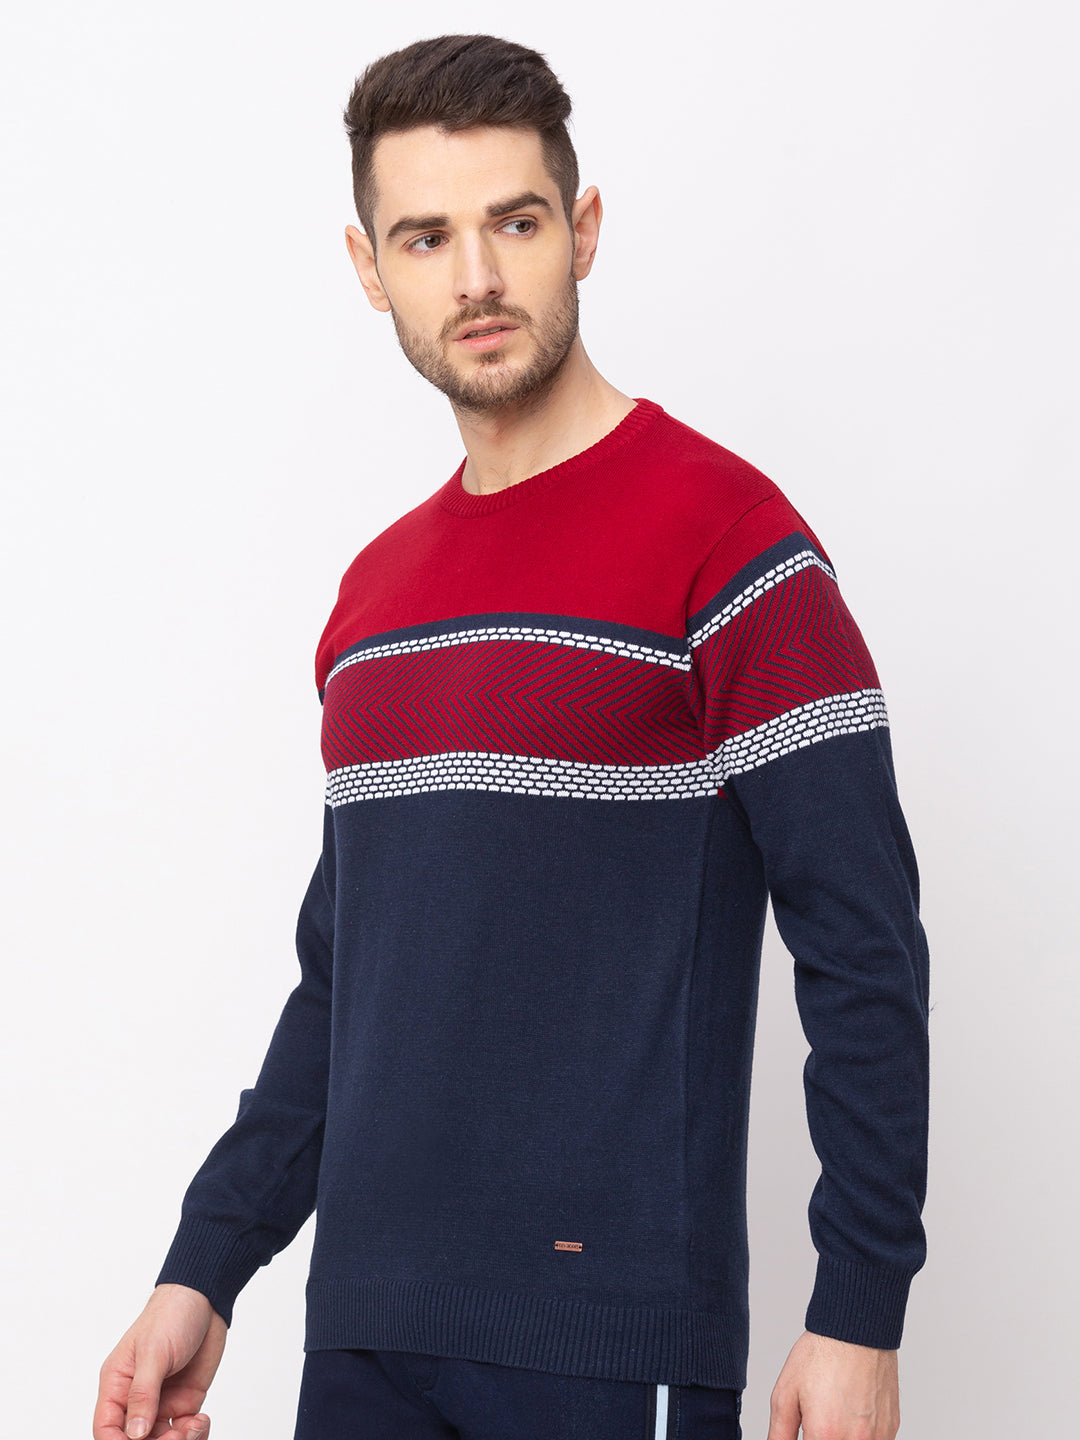 Globus Royal Blue Colourblocked Pullover Sweater-2